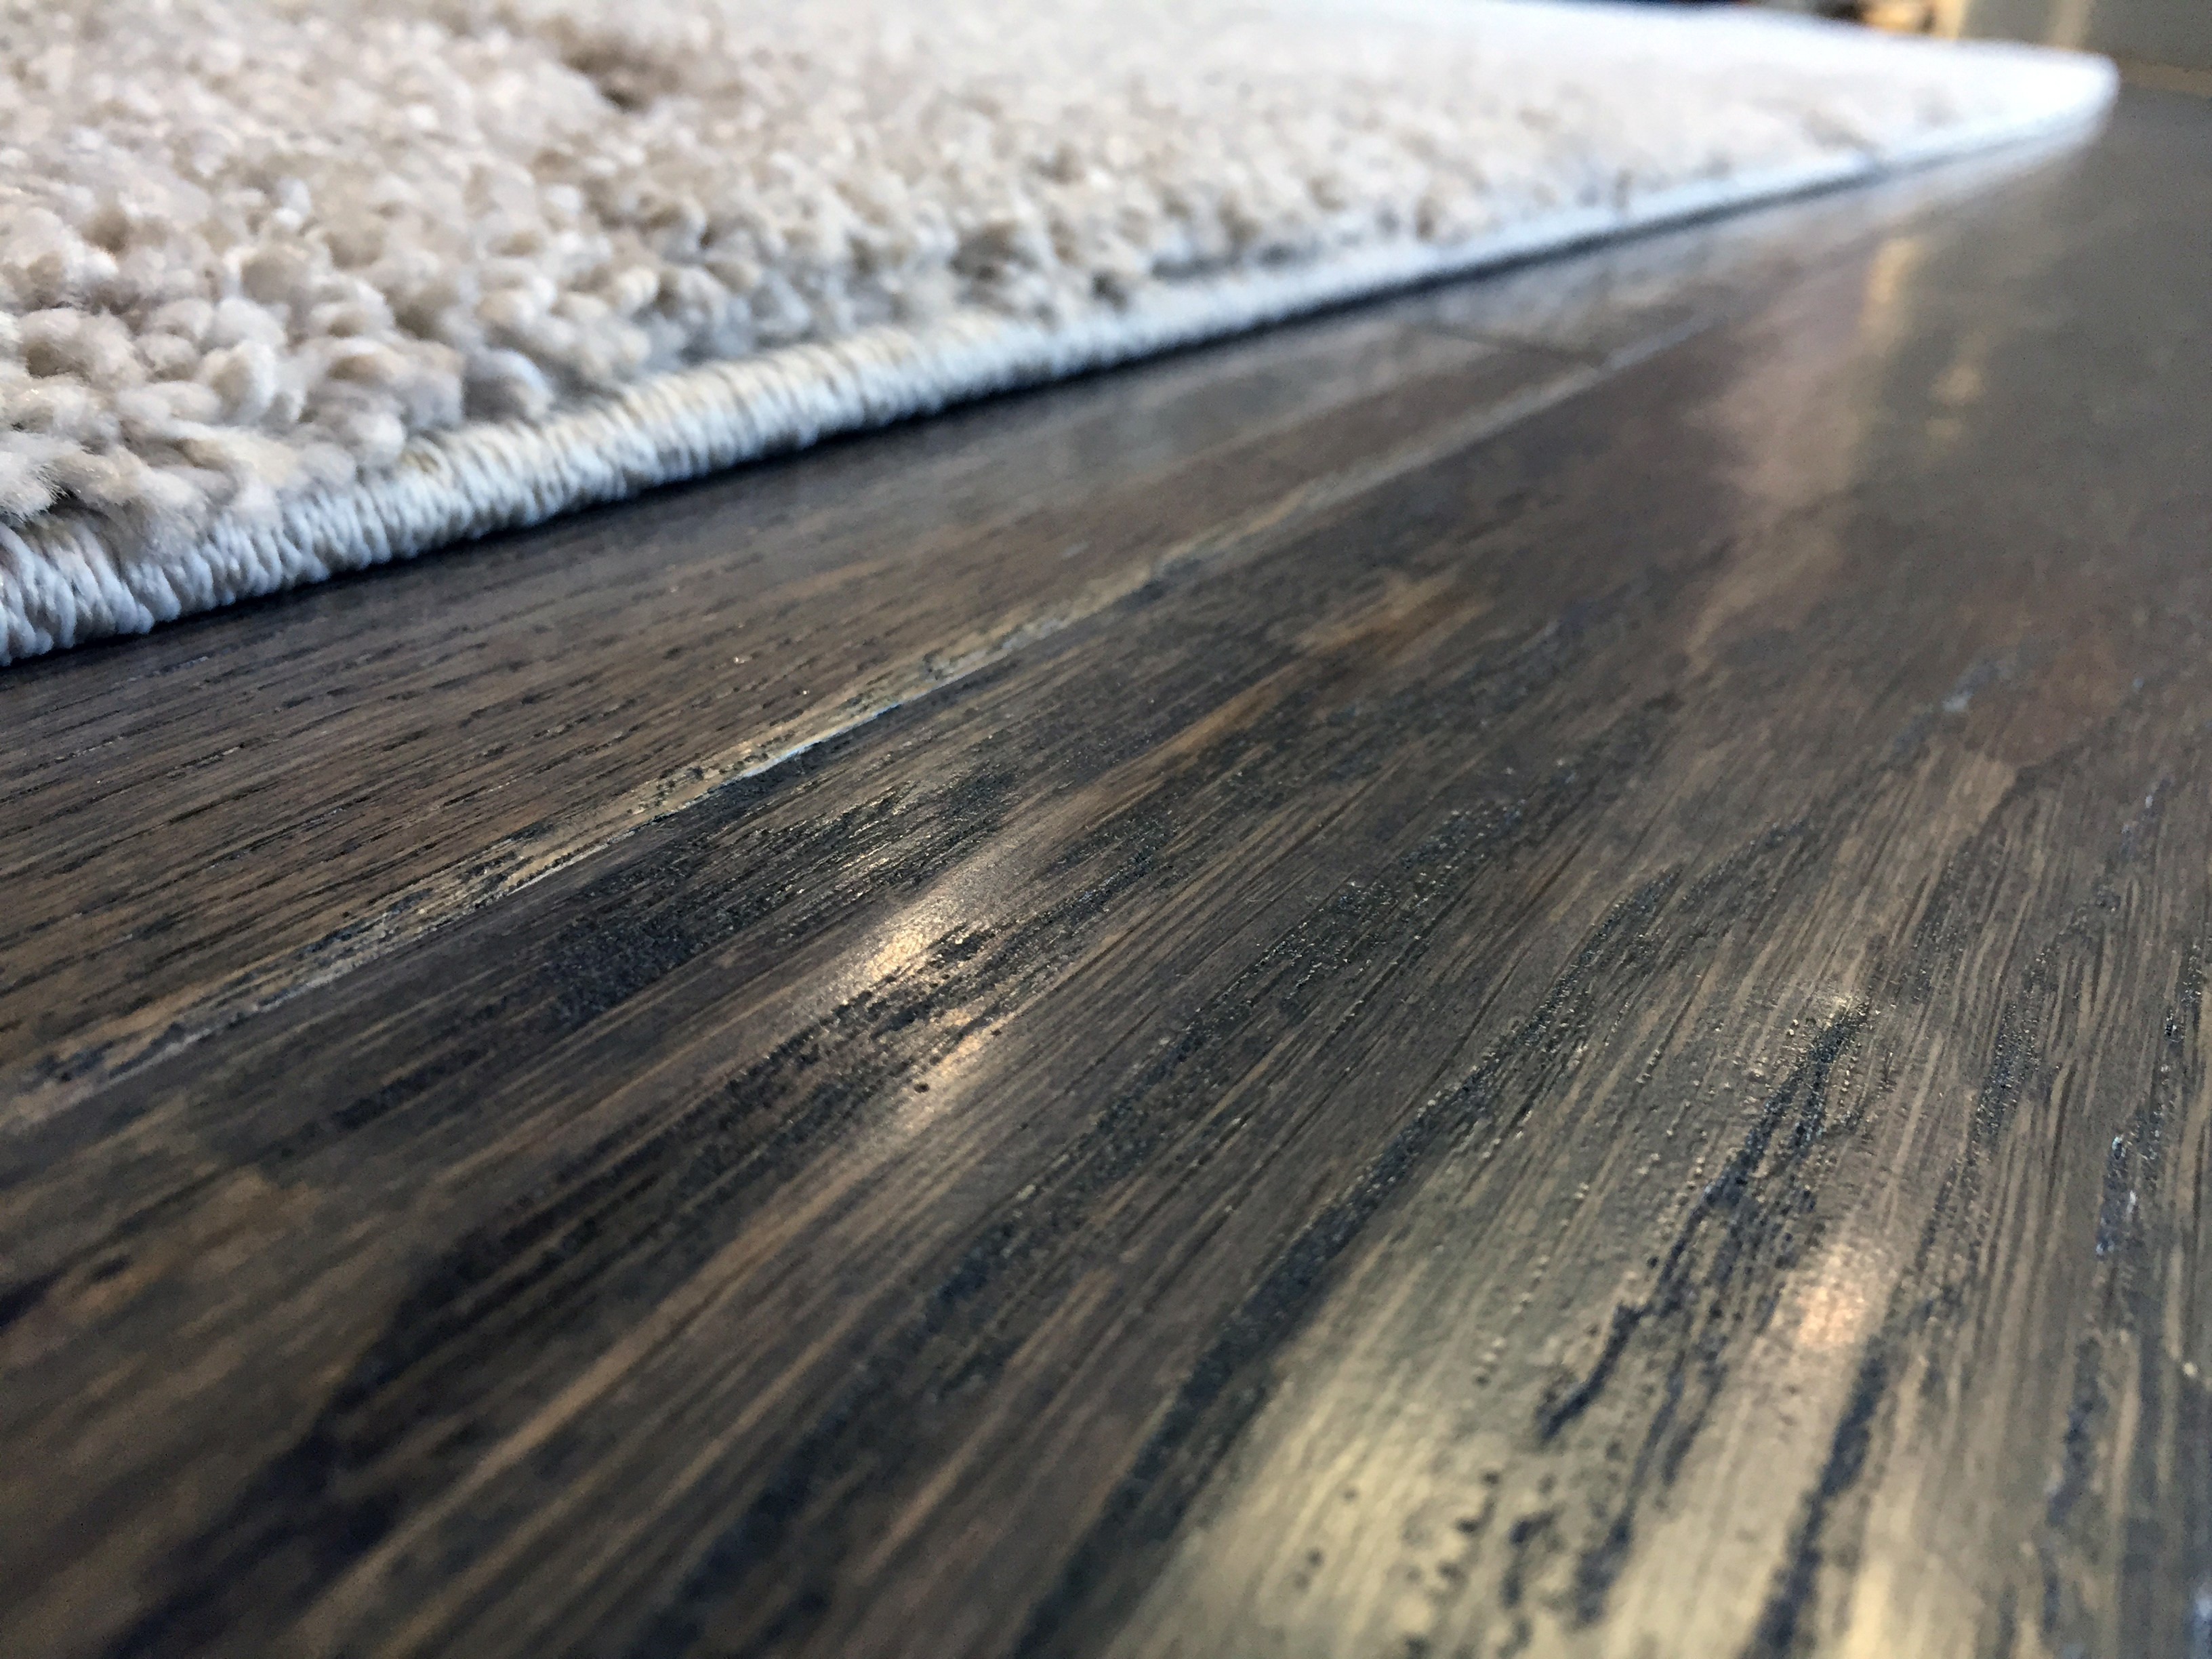 Bruce 5 Inch Hardwood Flooring Of Modern Rustic Archives the Kelly Homestead Intended for Changing Room Colors From Warm to Cool Grays White and Black for A